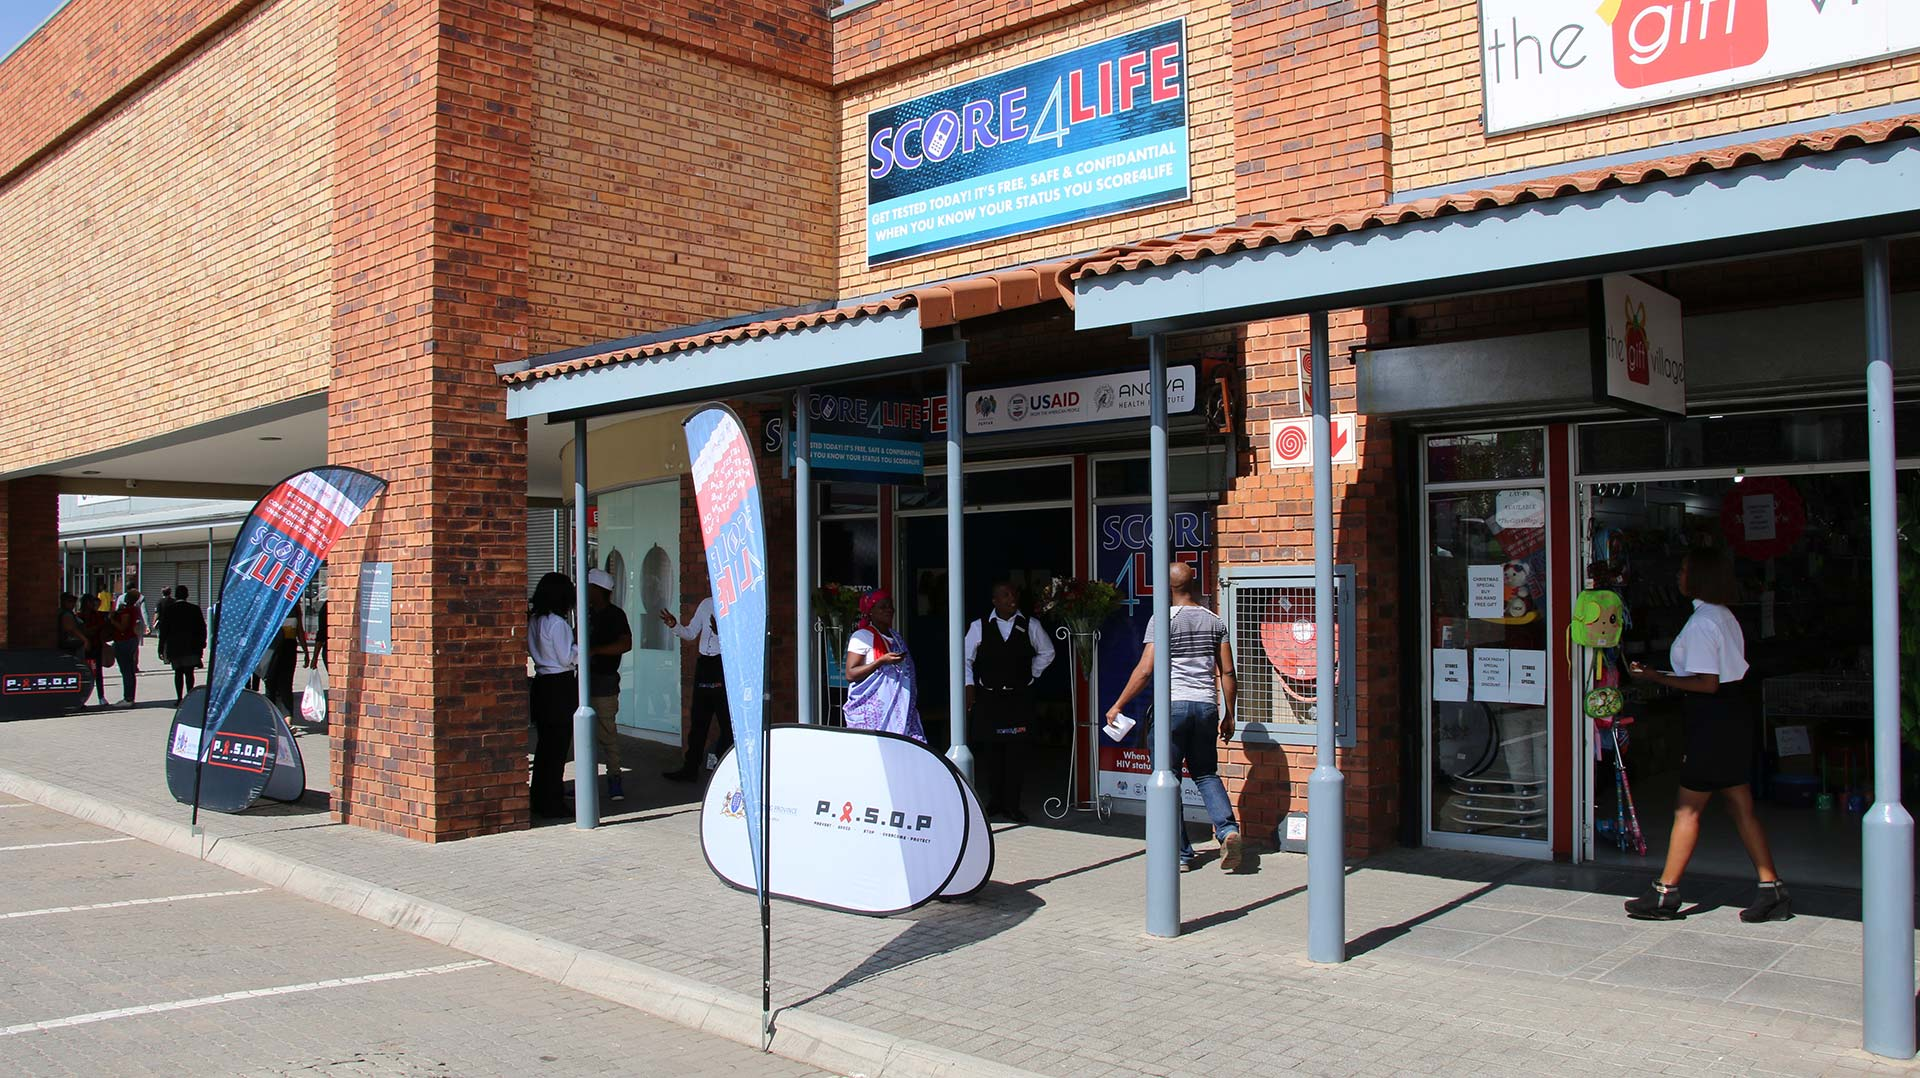 Score4Life Pop-up Clinic In Alex On The Up And Up